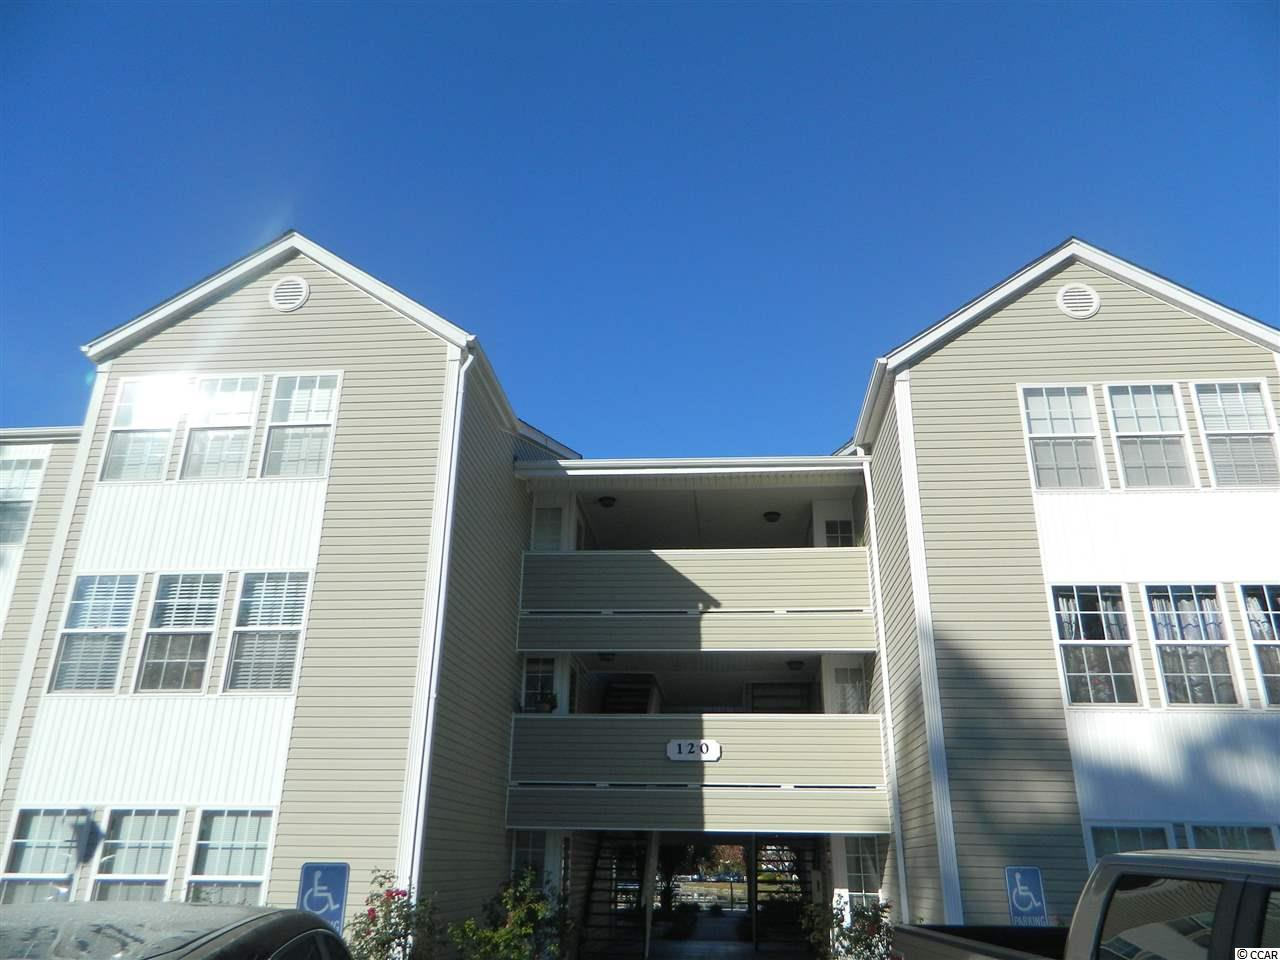 This lovely well maintained condo is ideal for an investment, secondary, or primary home. It has a direct pool view and sits off of a large lake with tons of beauty. The unit has lake views from all rooms including the Carolina room letting in an abundance of natural sunlight. Since this unit is on the 3rd floor you have vaulted ceilings giving it a spacious feel. It's a bike ride to the beach so make it your beach home today!